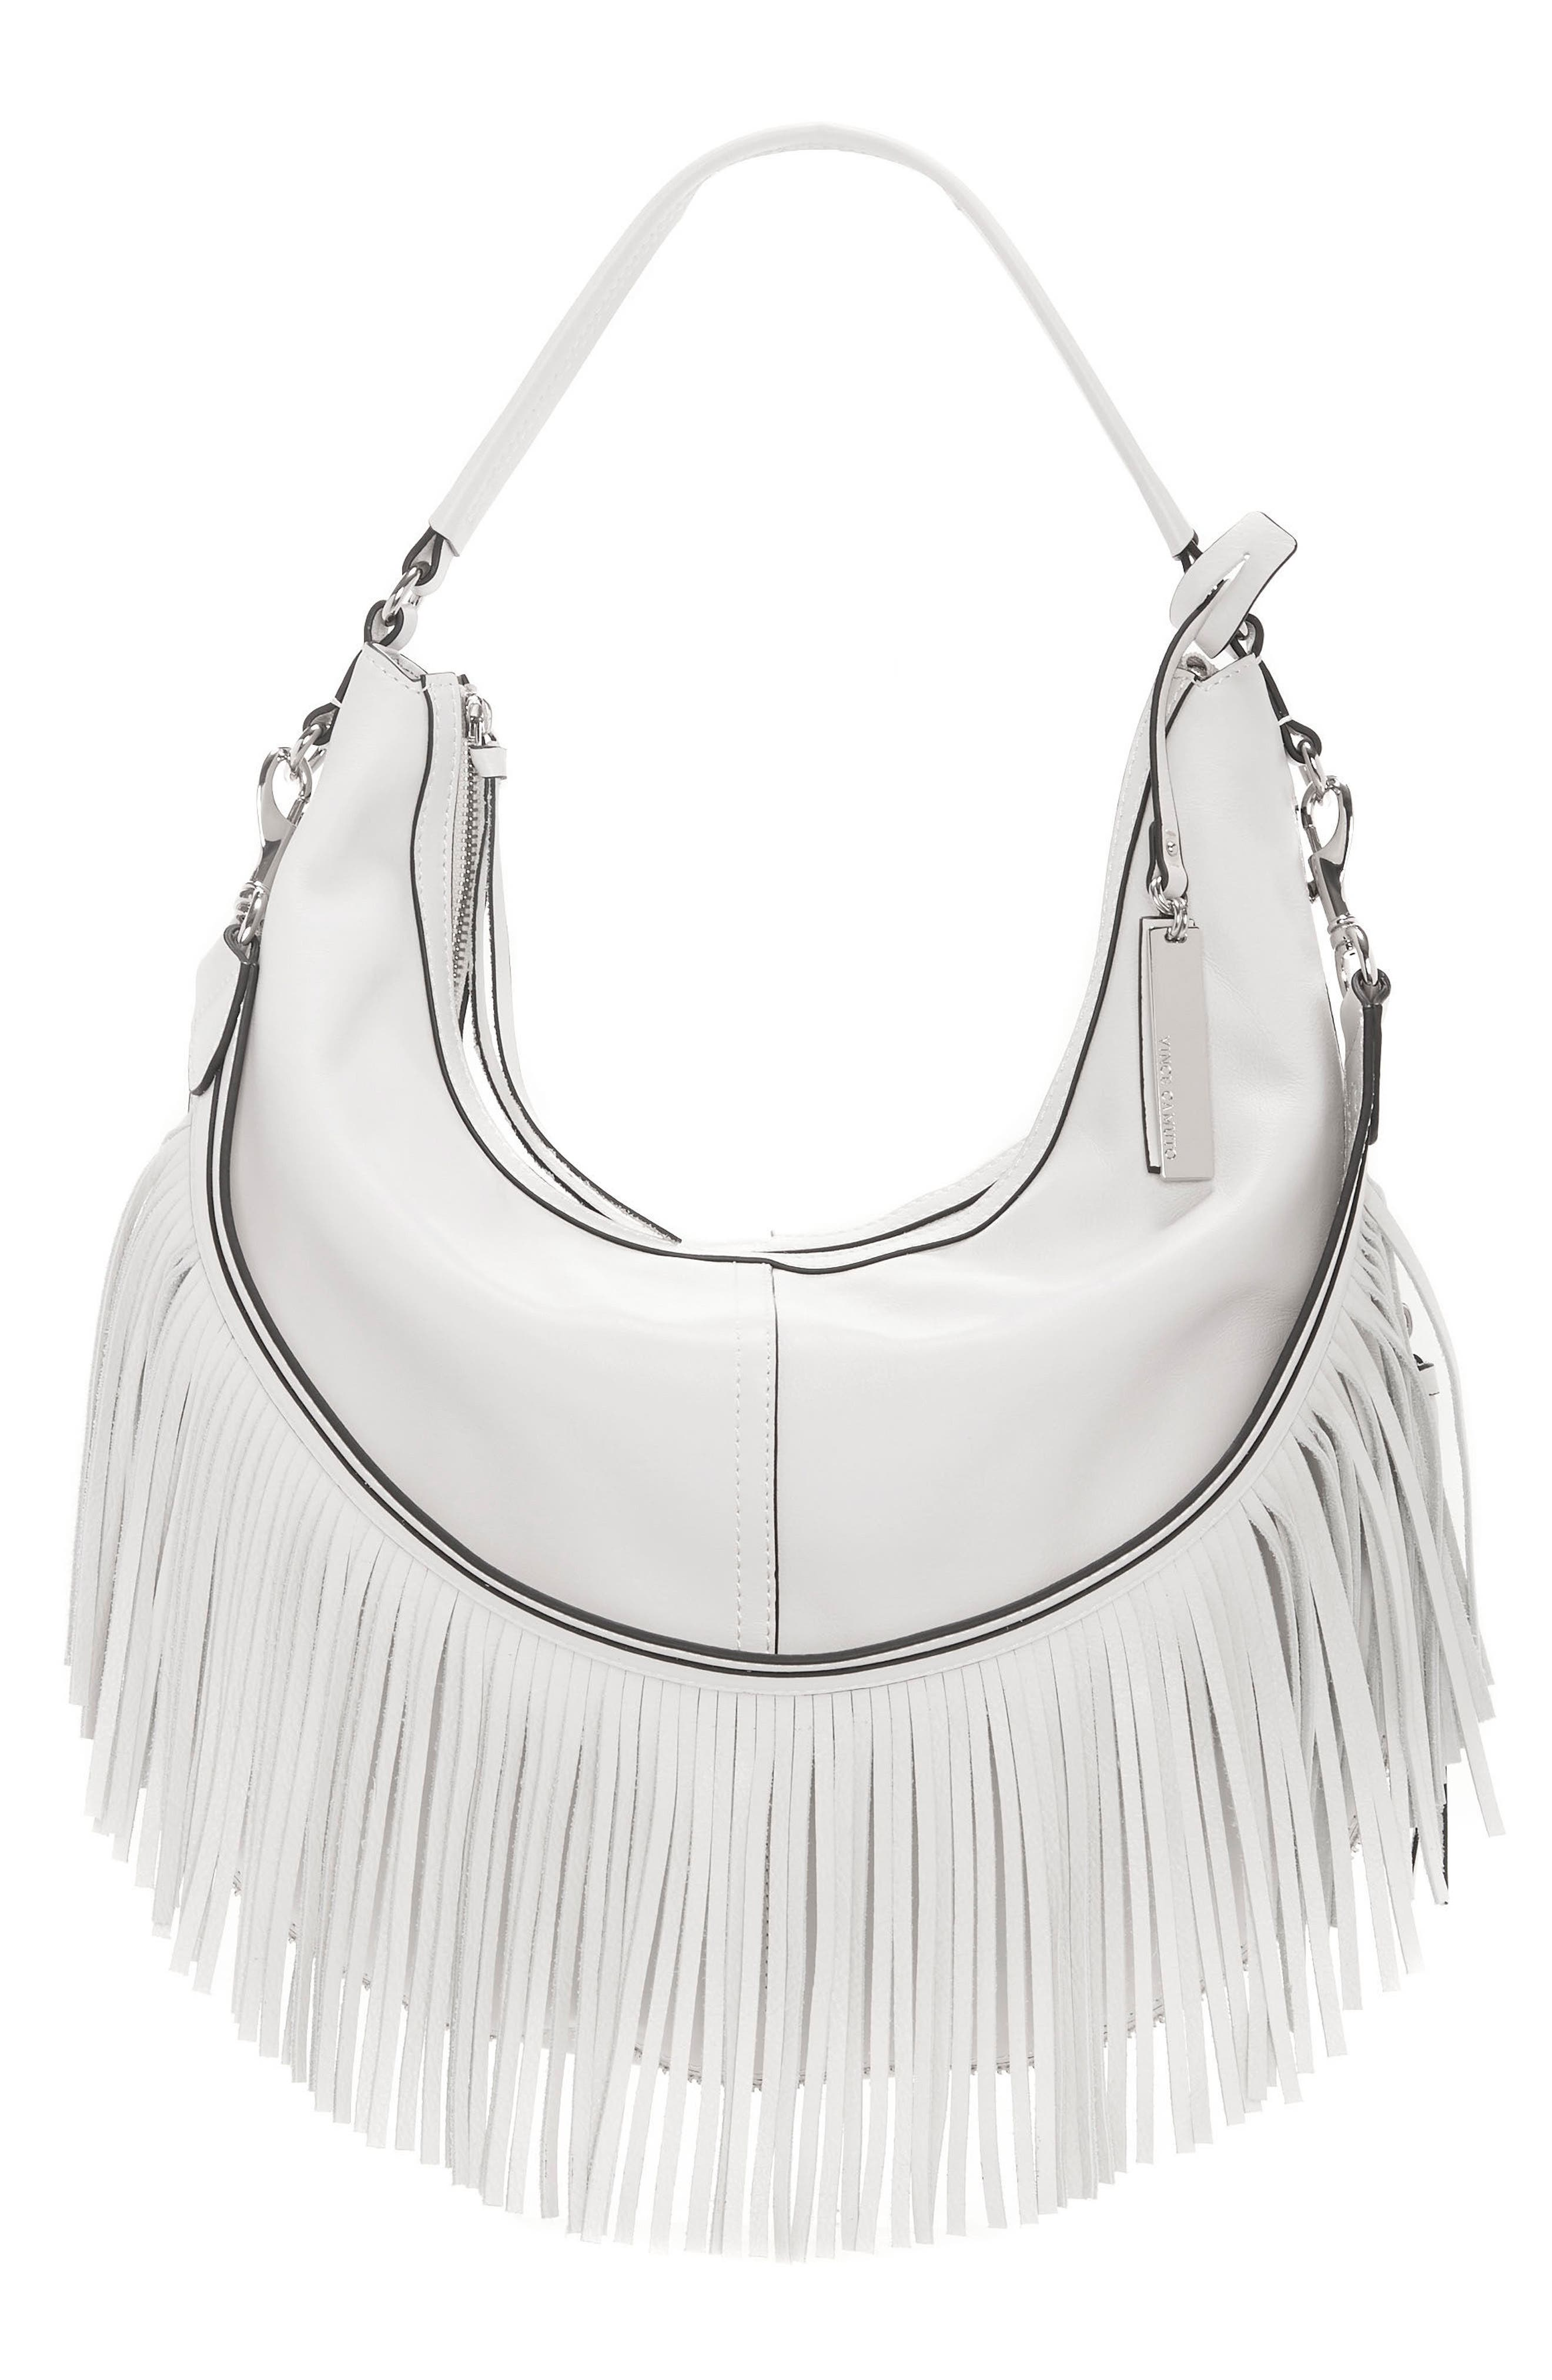 Main Image - Vince Camuto Hil Leather Hobo Bag